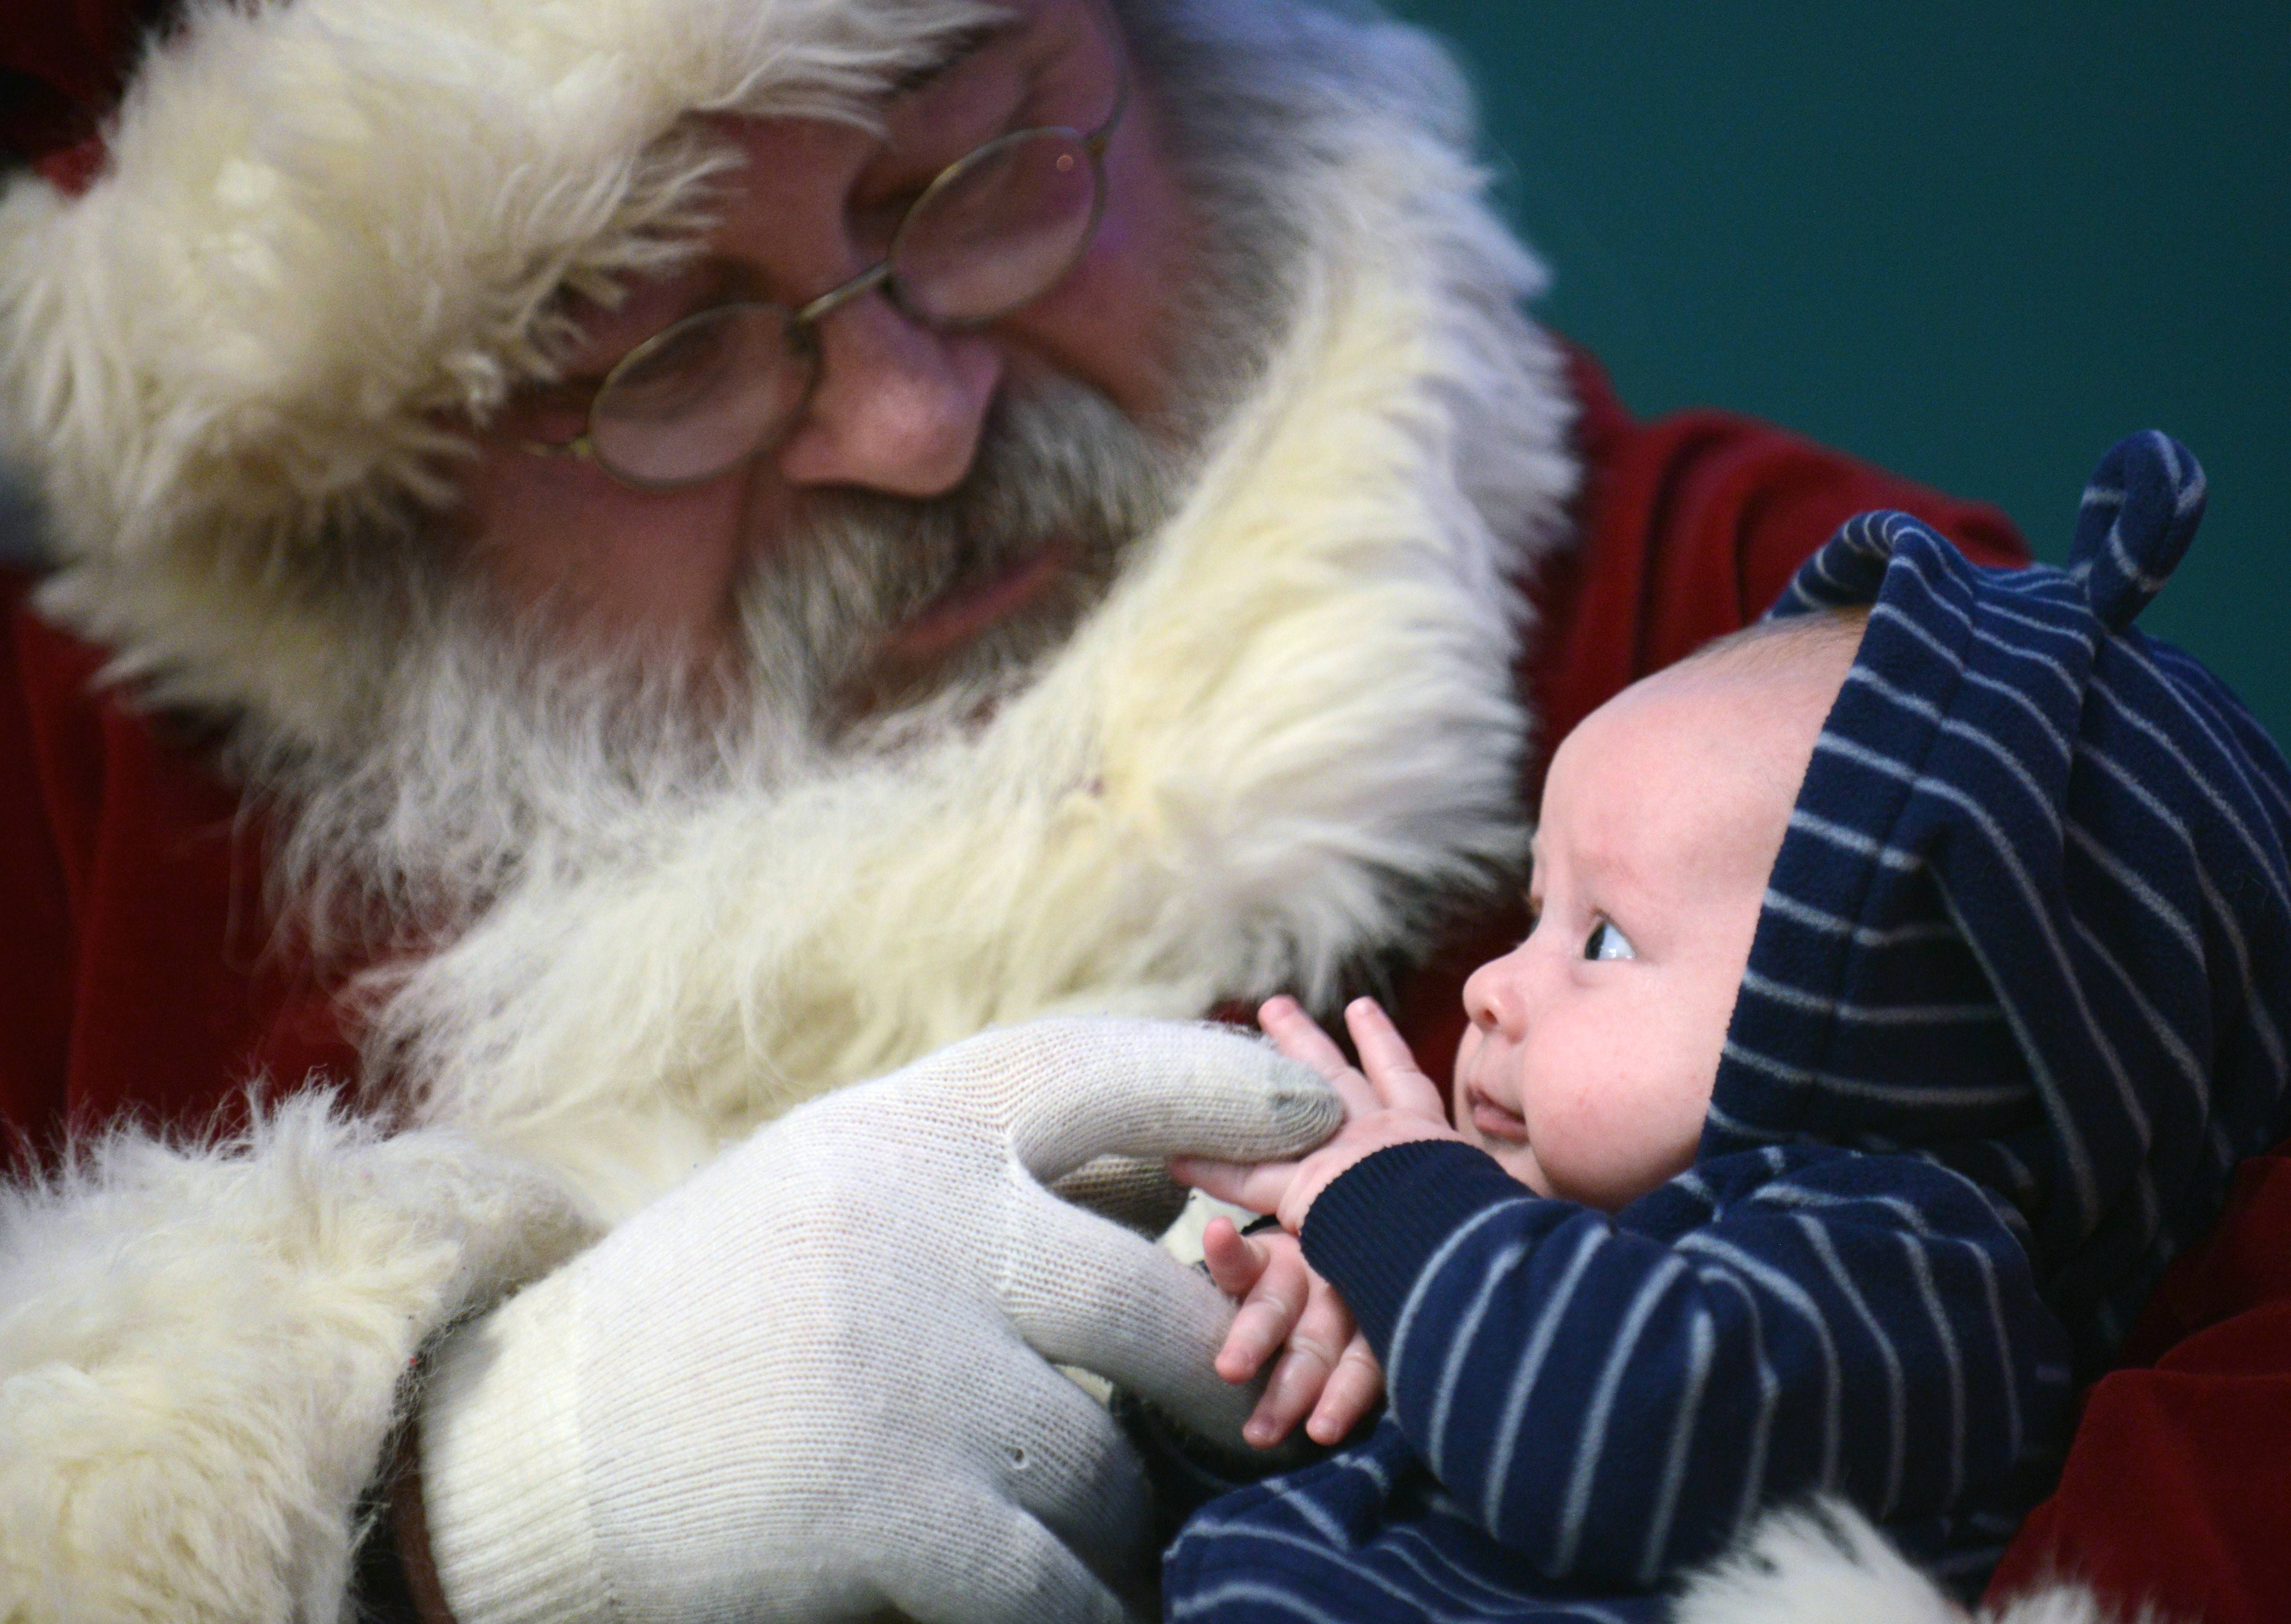 Seven-week-old Smith Potilechio of Elburn gazes up wide-eyed at Santa Claus at the 21st annual Elburn Christmas Stroll Saturday. Moments later, he covered his face with his tiny hands. Smith's older sister, Harlowe, 2, steered clear of the jolly fellow, choosing to stay in her stroller. Kids of all ages waited in line to see Santa at the Town and Country Library.